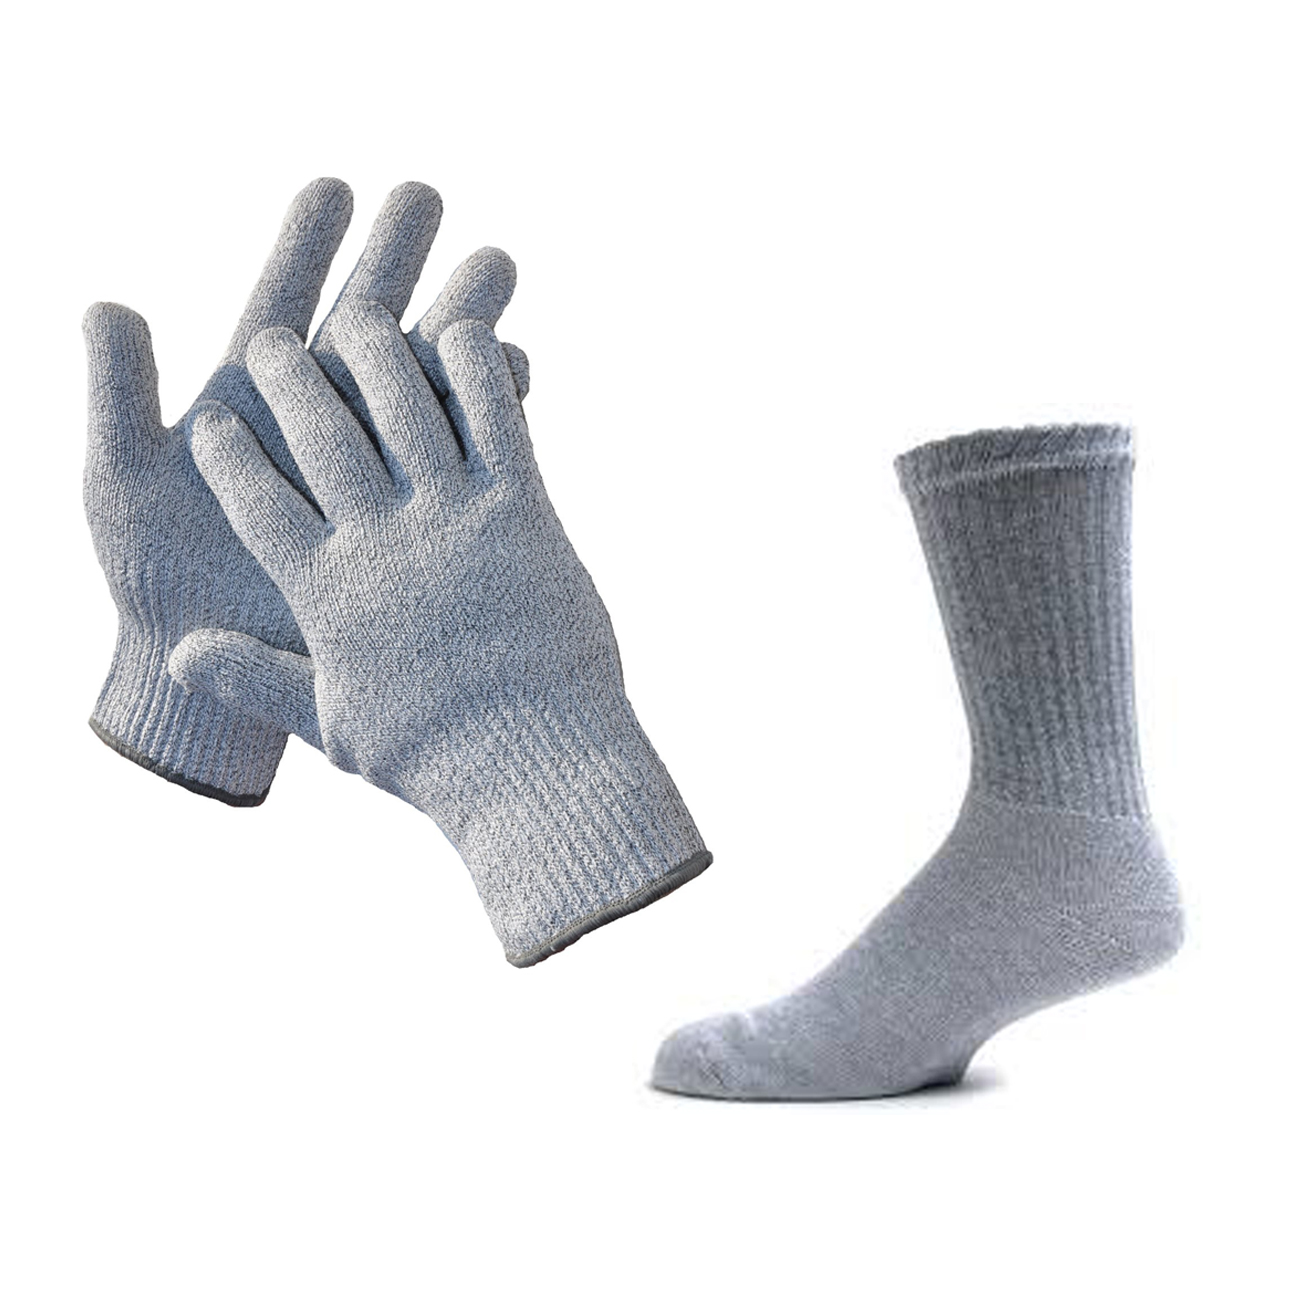 Gloves, Socks